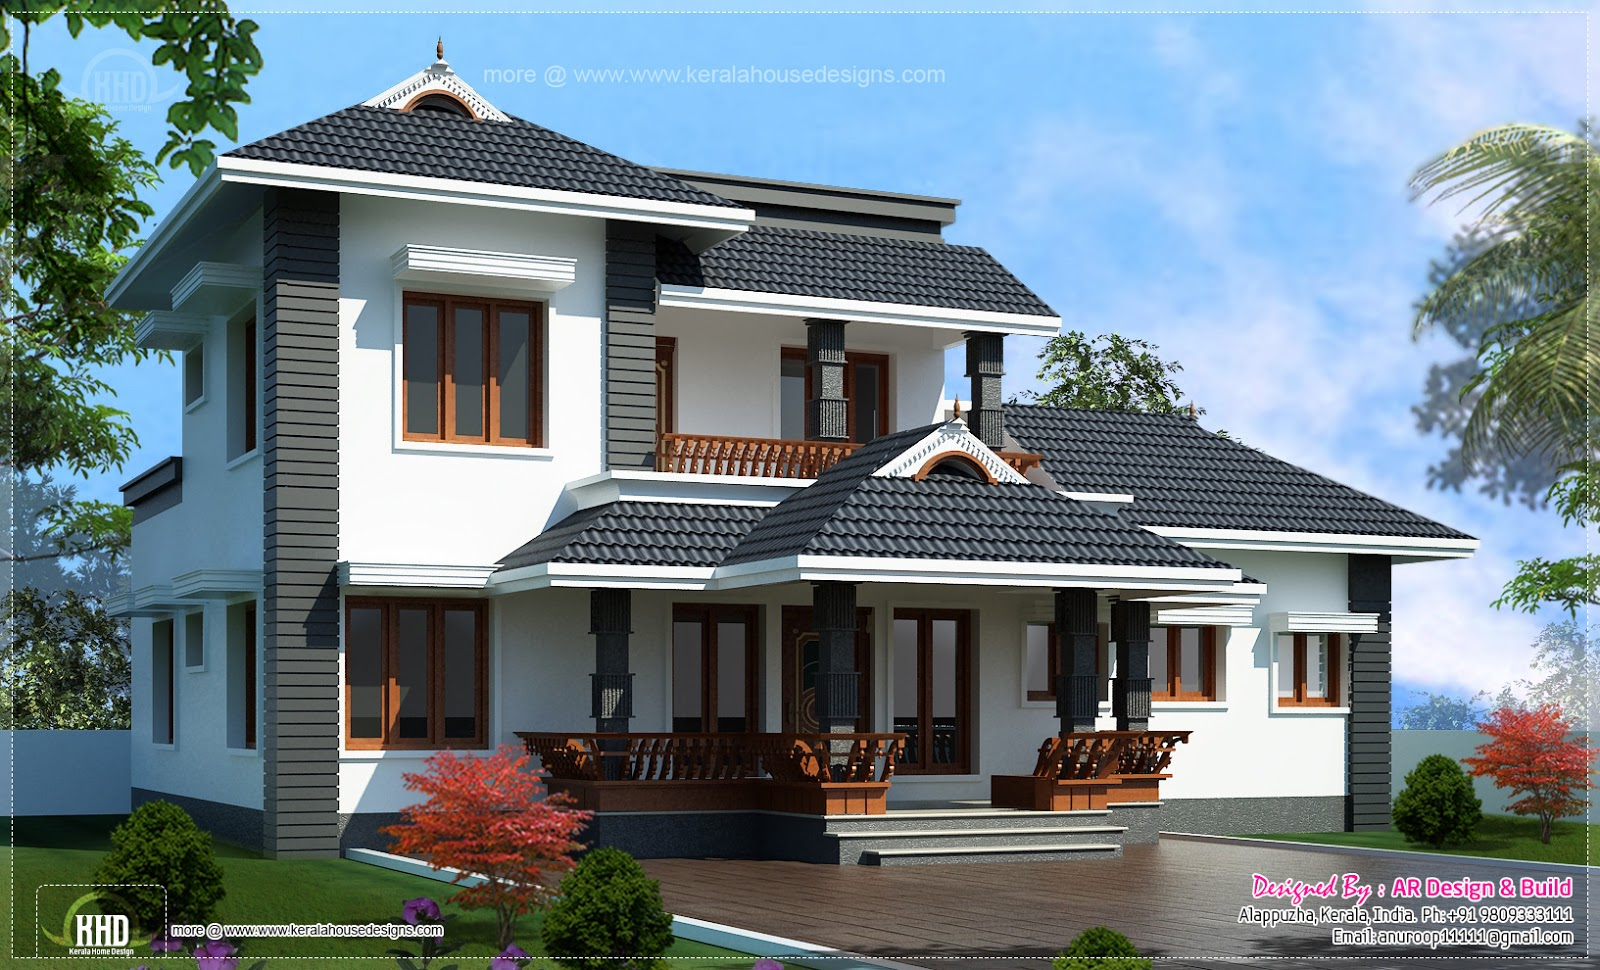 2000 4 bedroom sloping roof residence kerala for Traditional house designs in tamilnadu